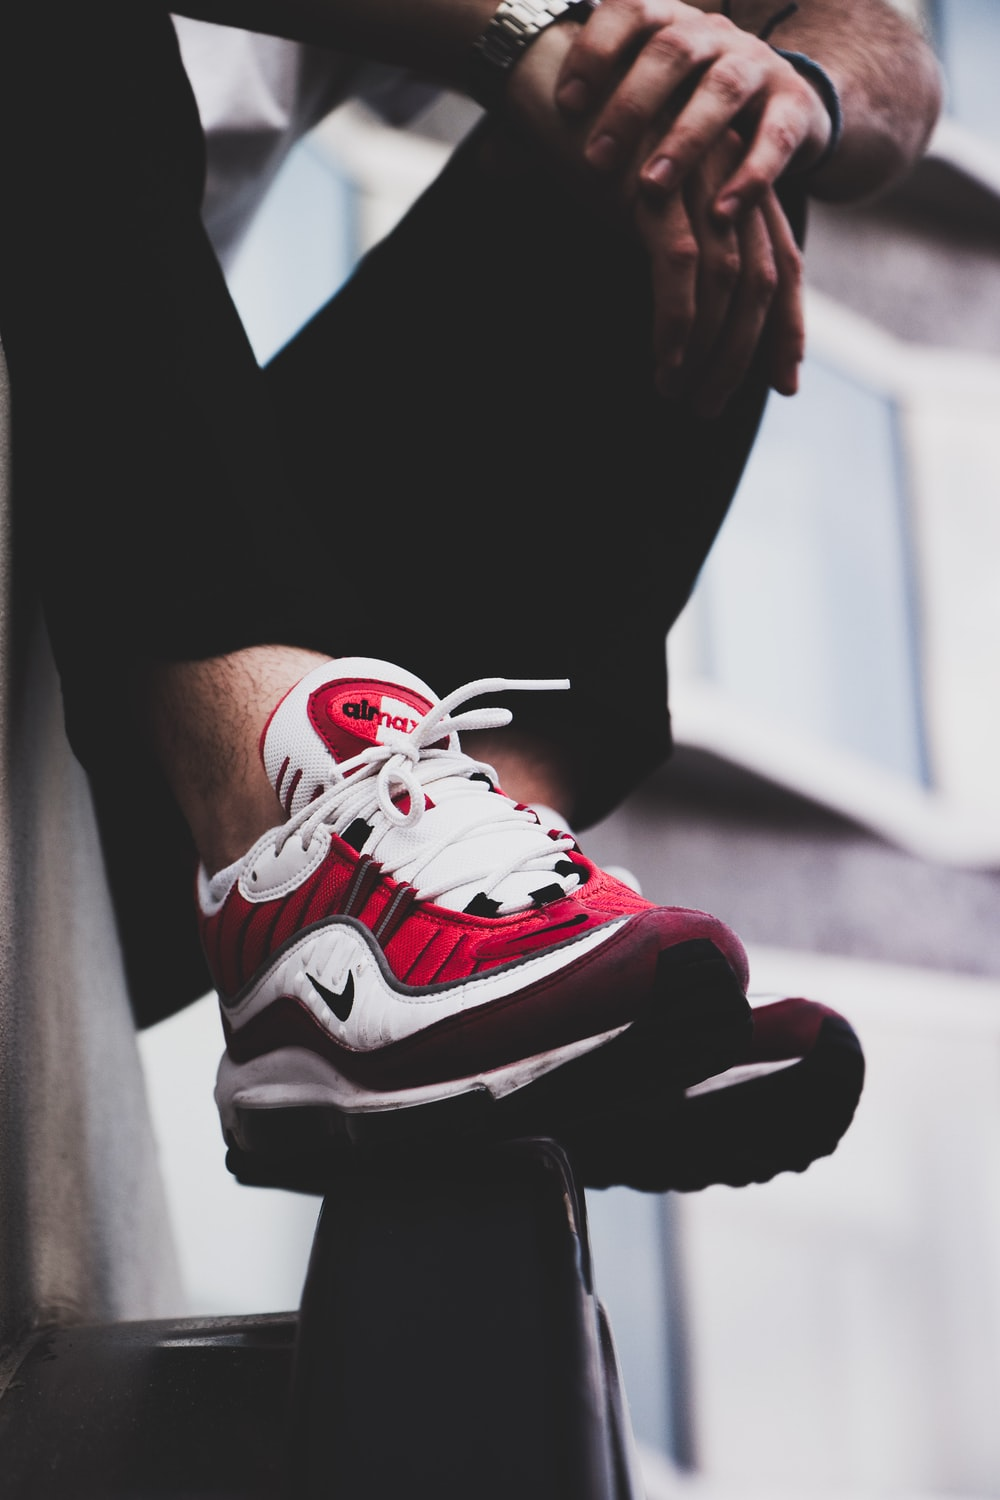 red-and-white Nike Air Max shoes\